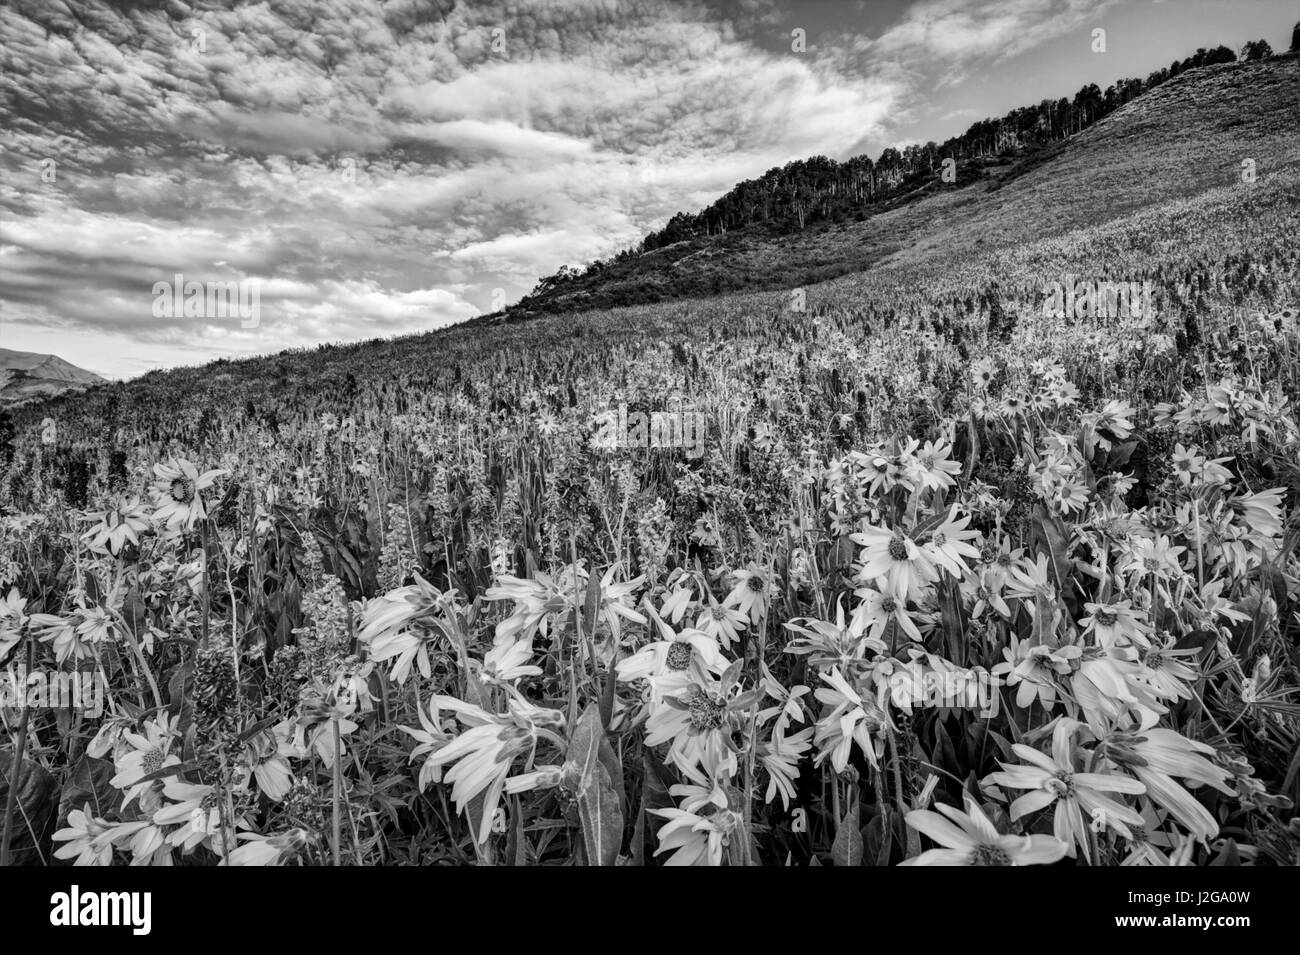 USA, Colorado, Crested Butte. Wildflowers cover hillside. Credit as: Dennis Flaherty / Jaynes Gallery / DanitaDelimont.com - Stock Image